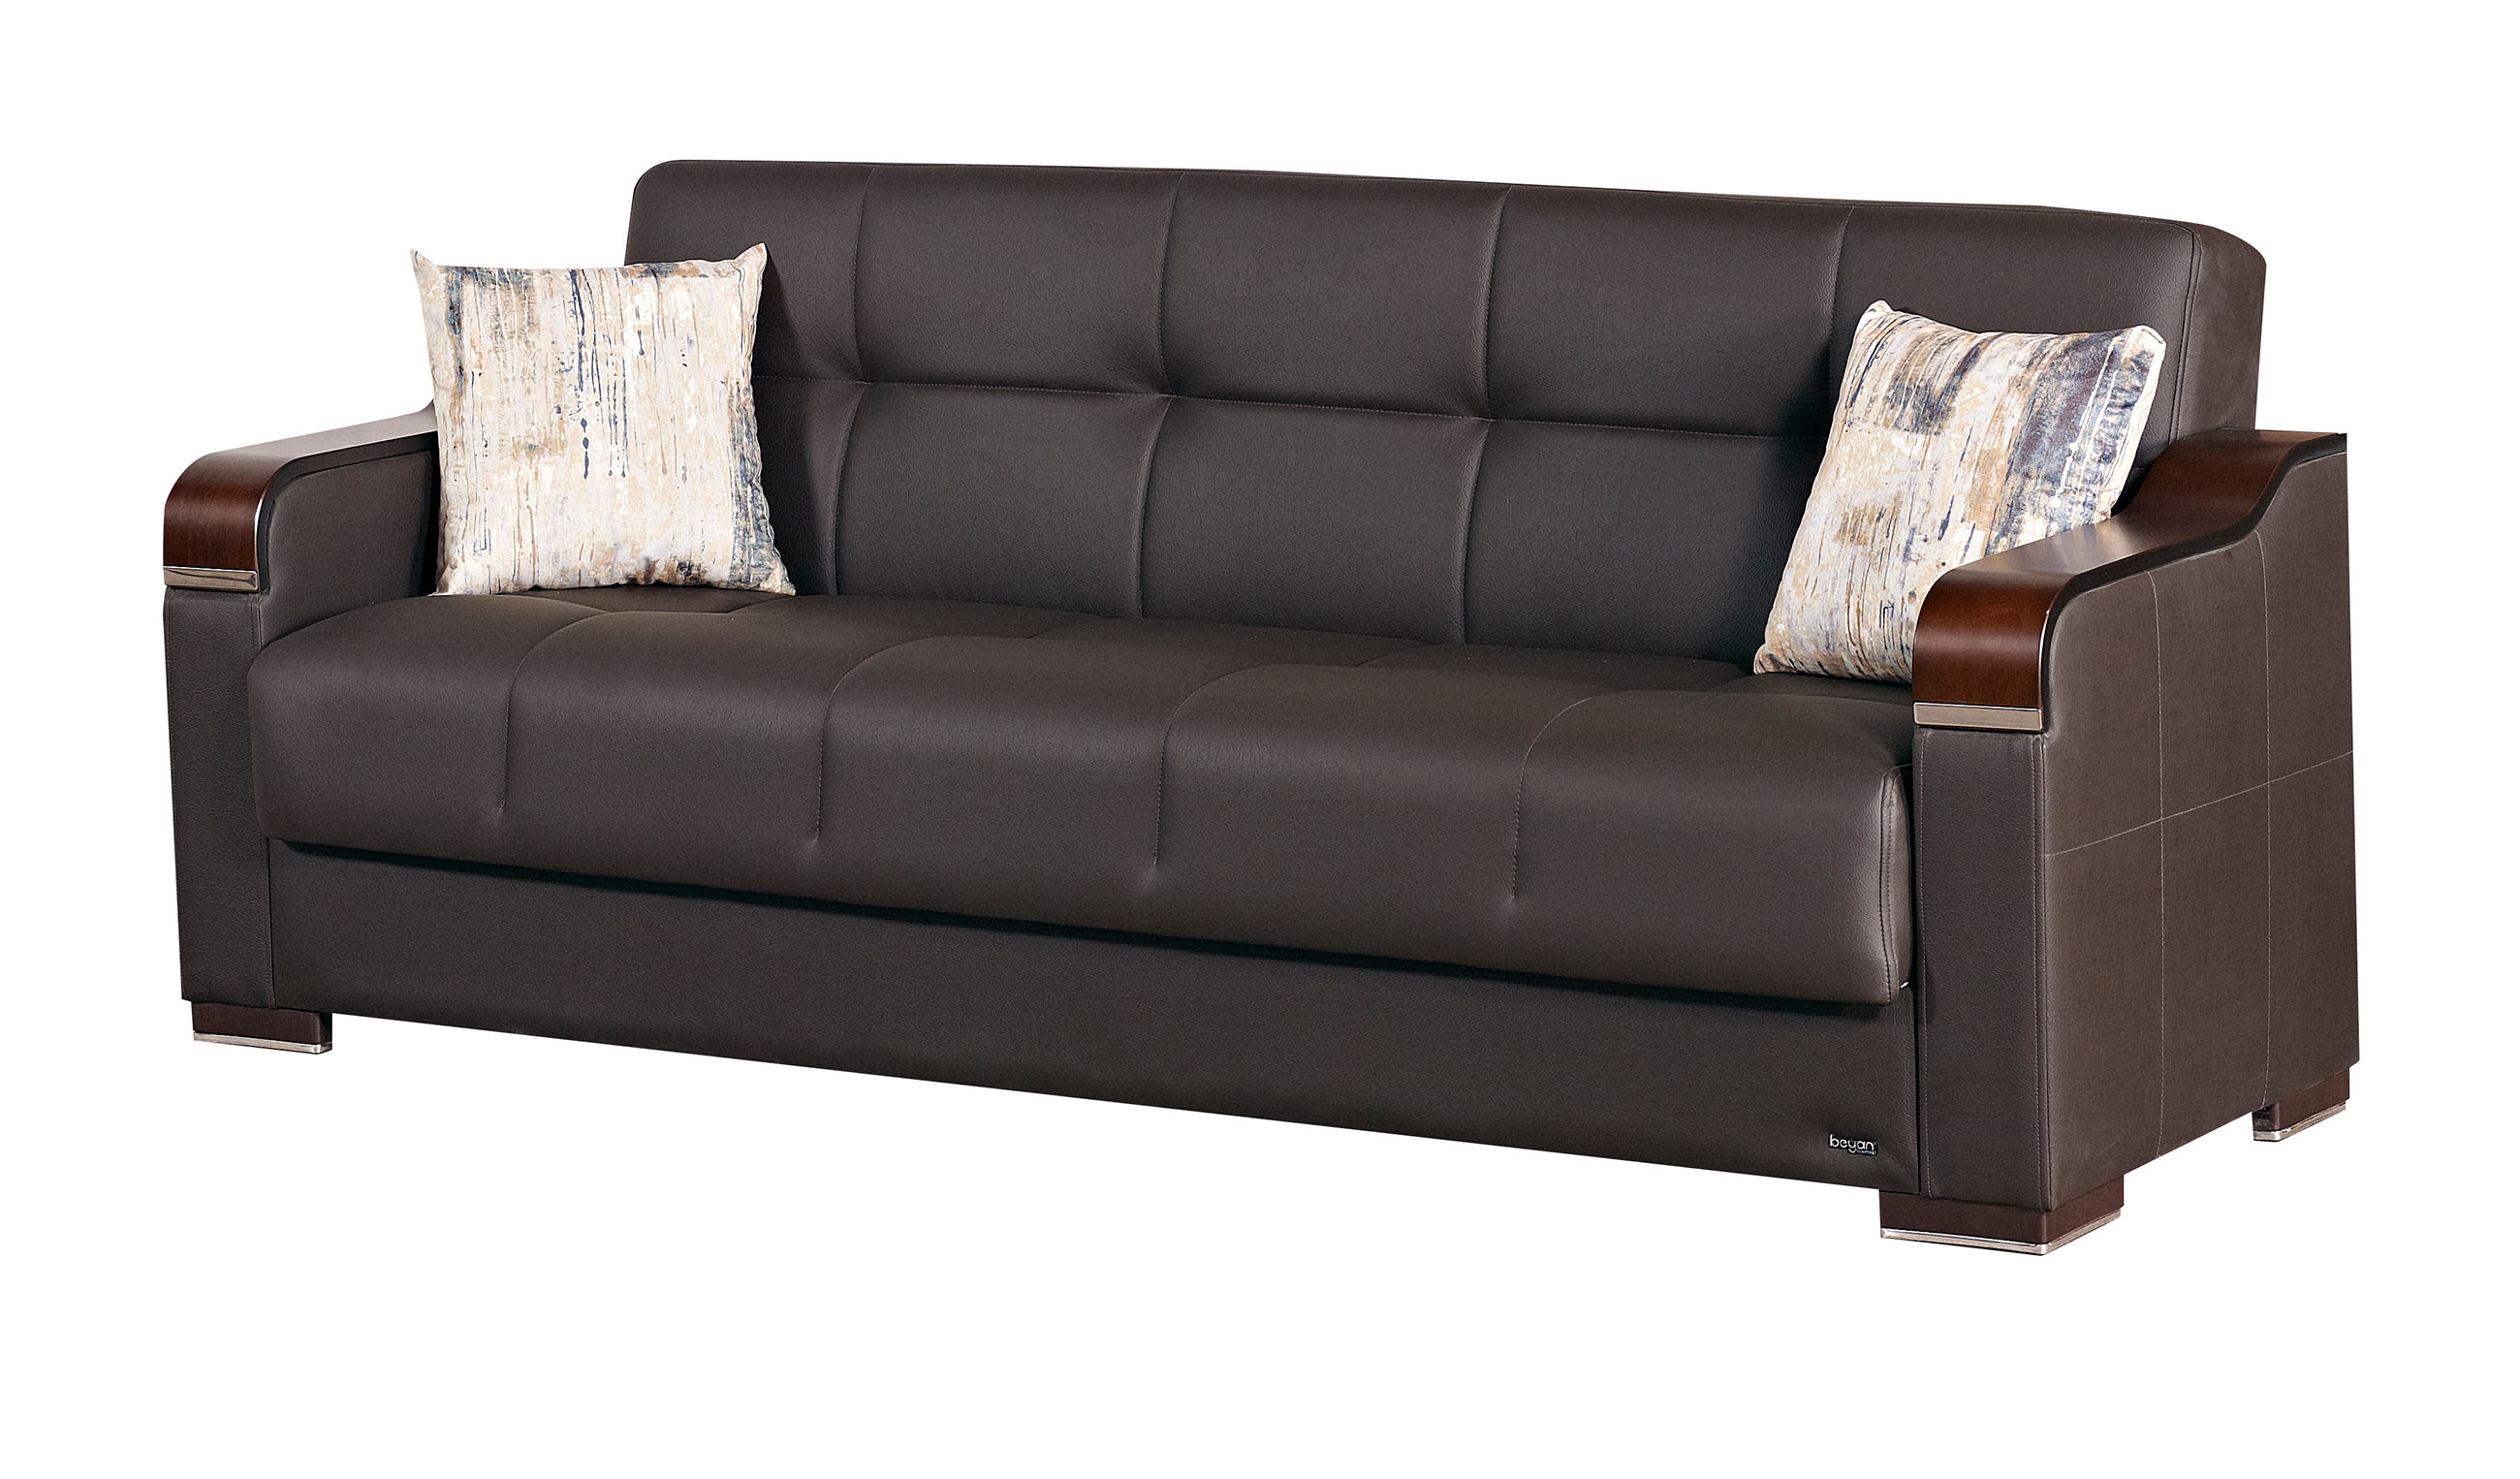 empire furniture sofa george smith sofas harrogate paramus dark brown fabric bed by usa